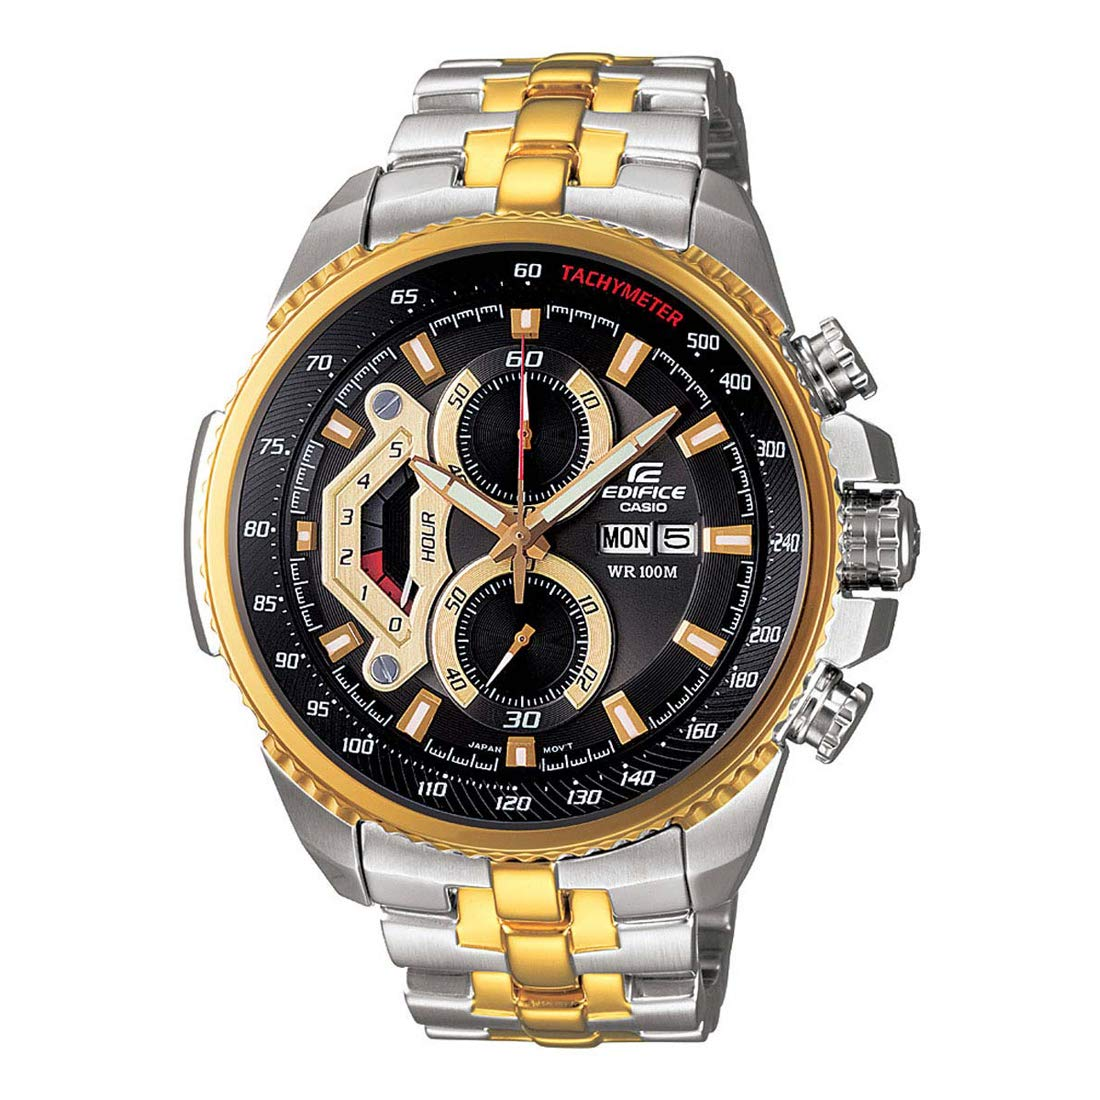 dc6e7d0de8b Buy Casio Edifice Men s Tachymeter Chronograph EF-558SG-1AVDF (ED439)  Online at Low Prices in India - Amazon.in